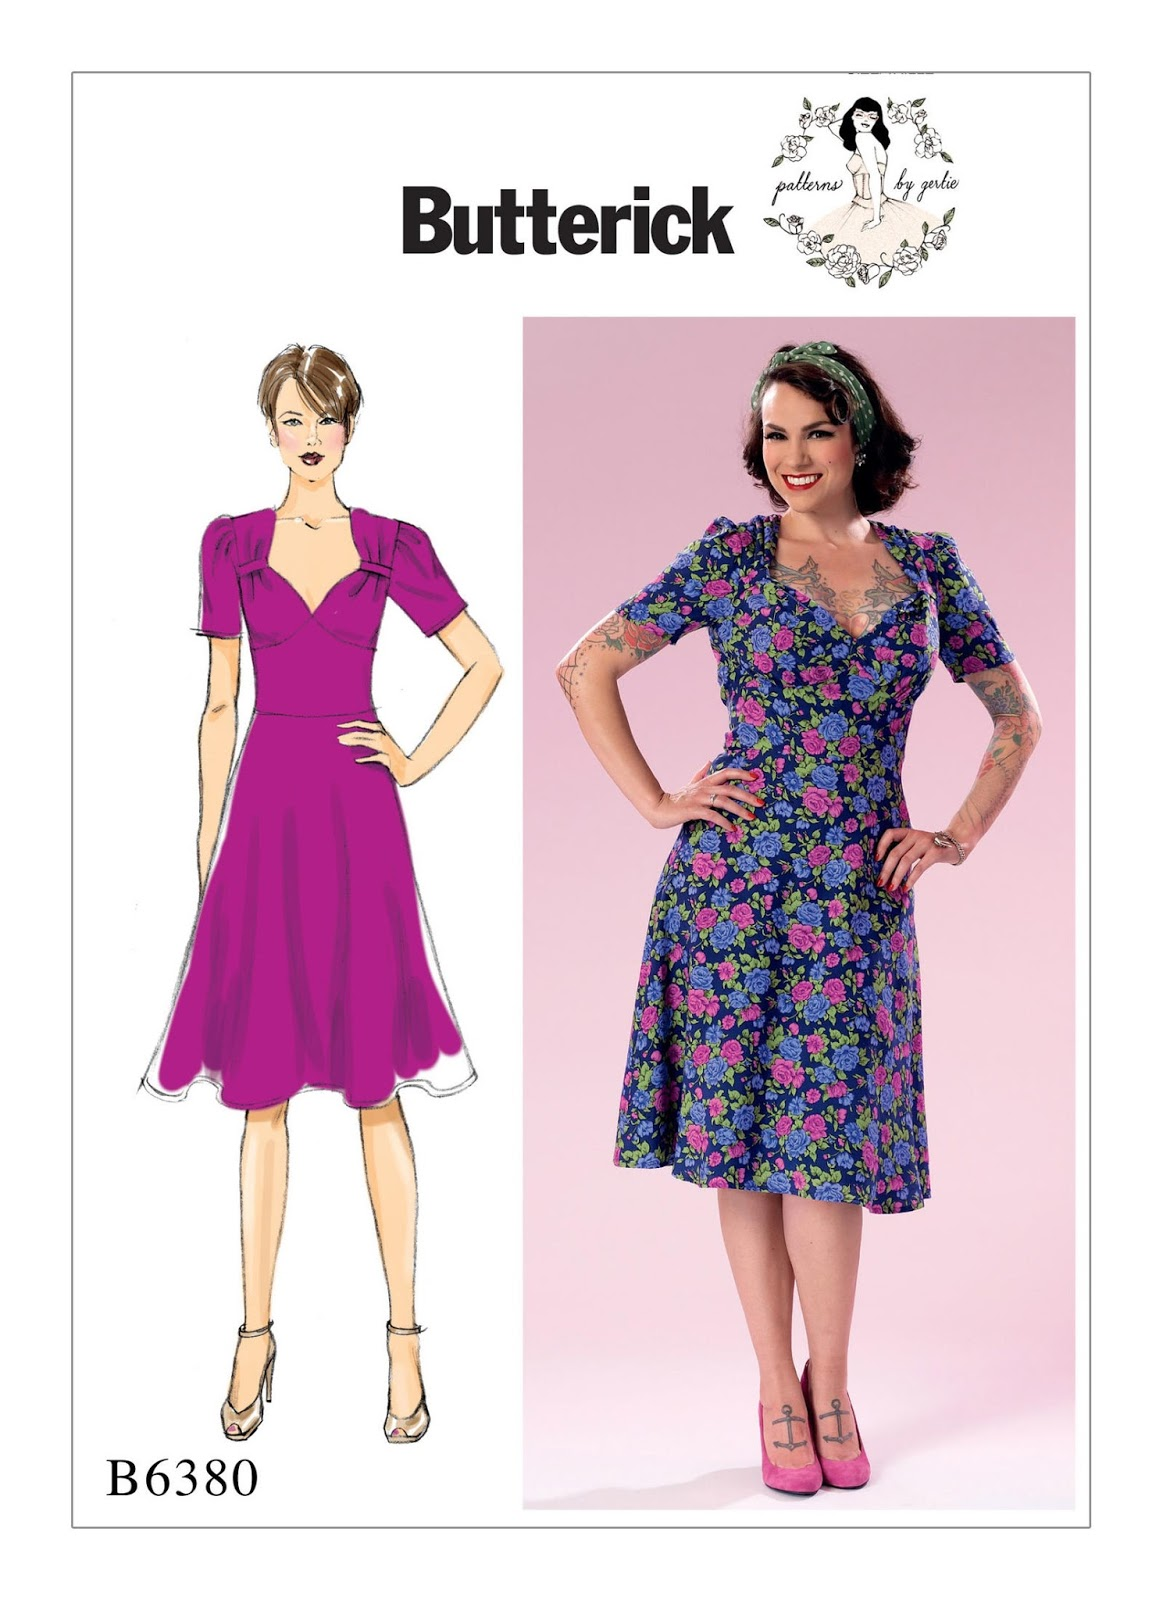 Gertie's New Blog for Better Sewing: New Butterick Patterns